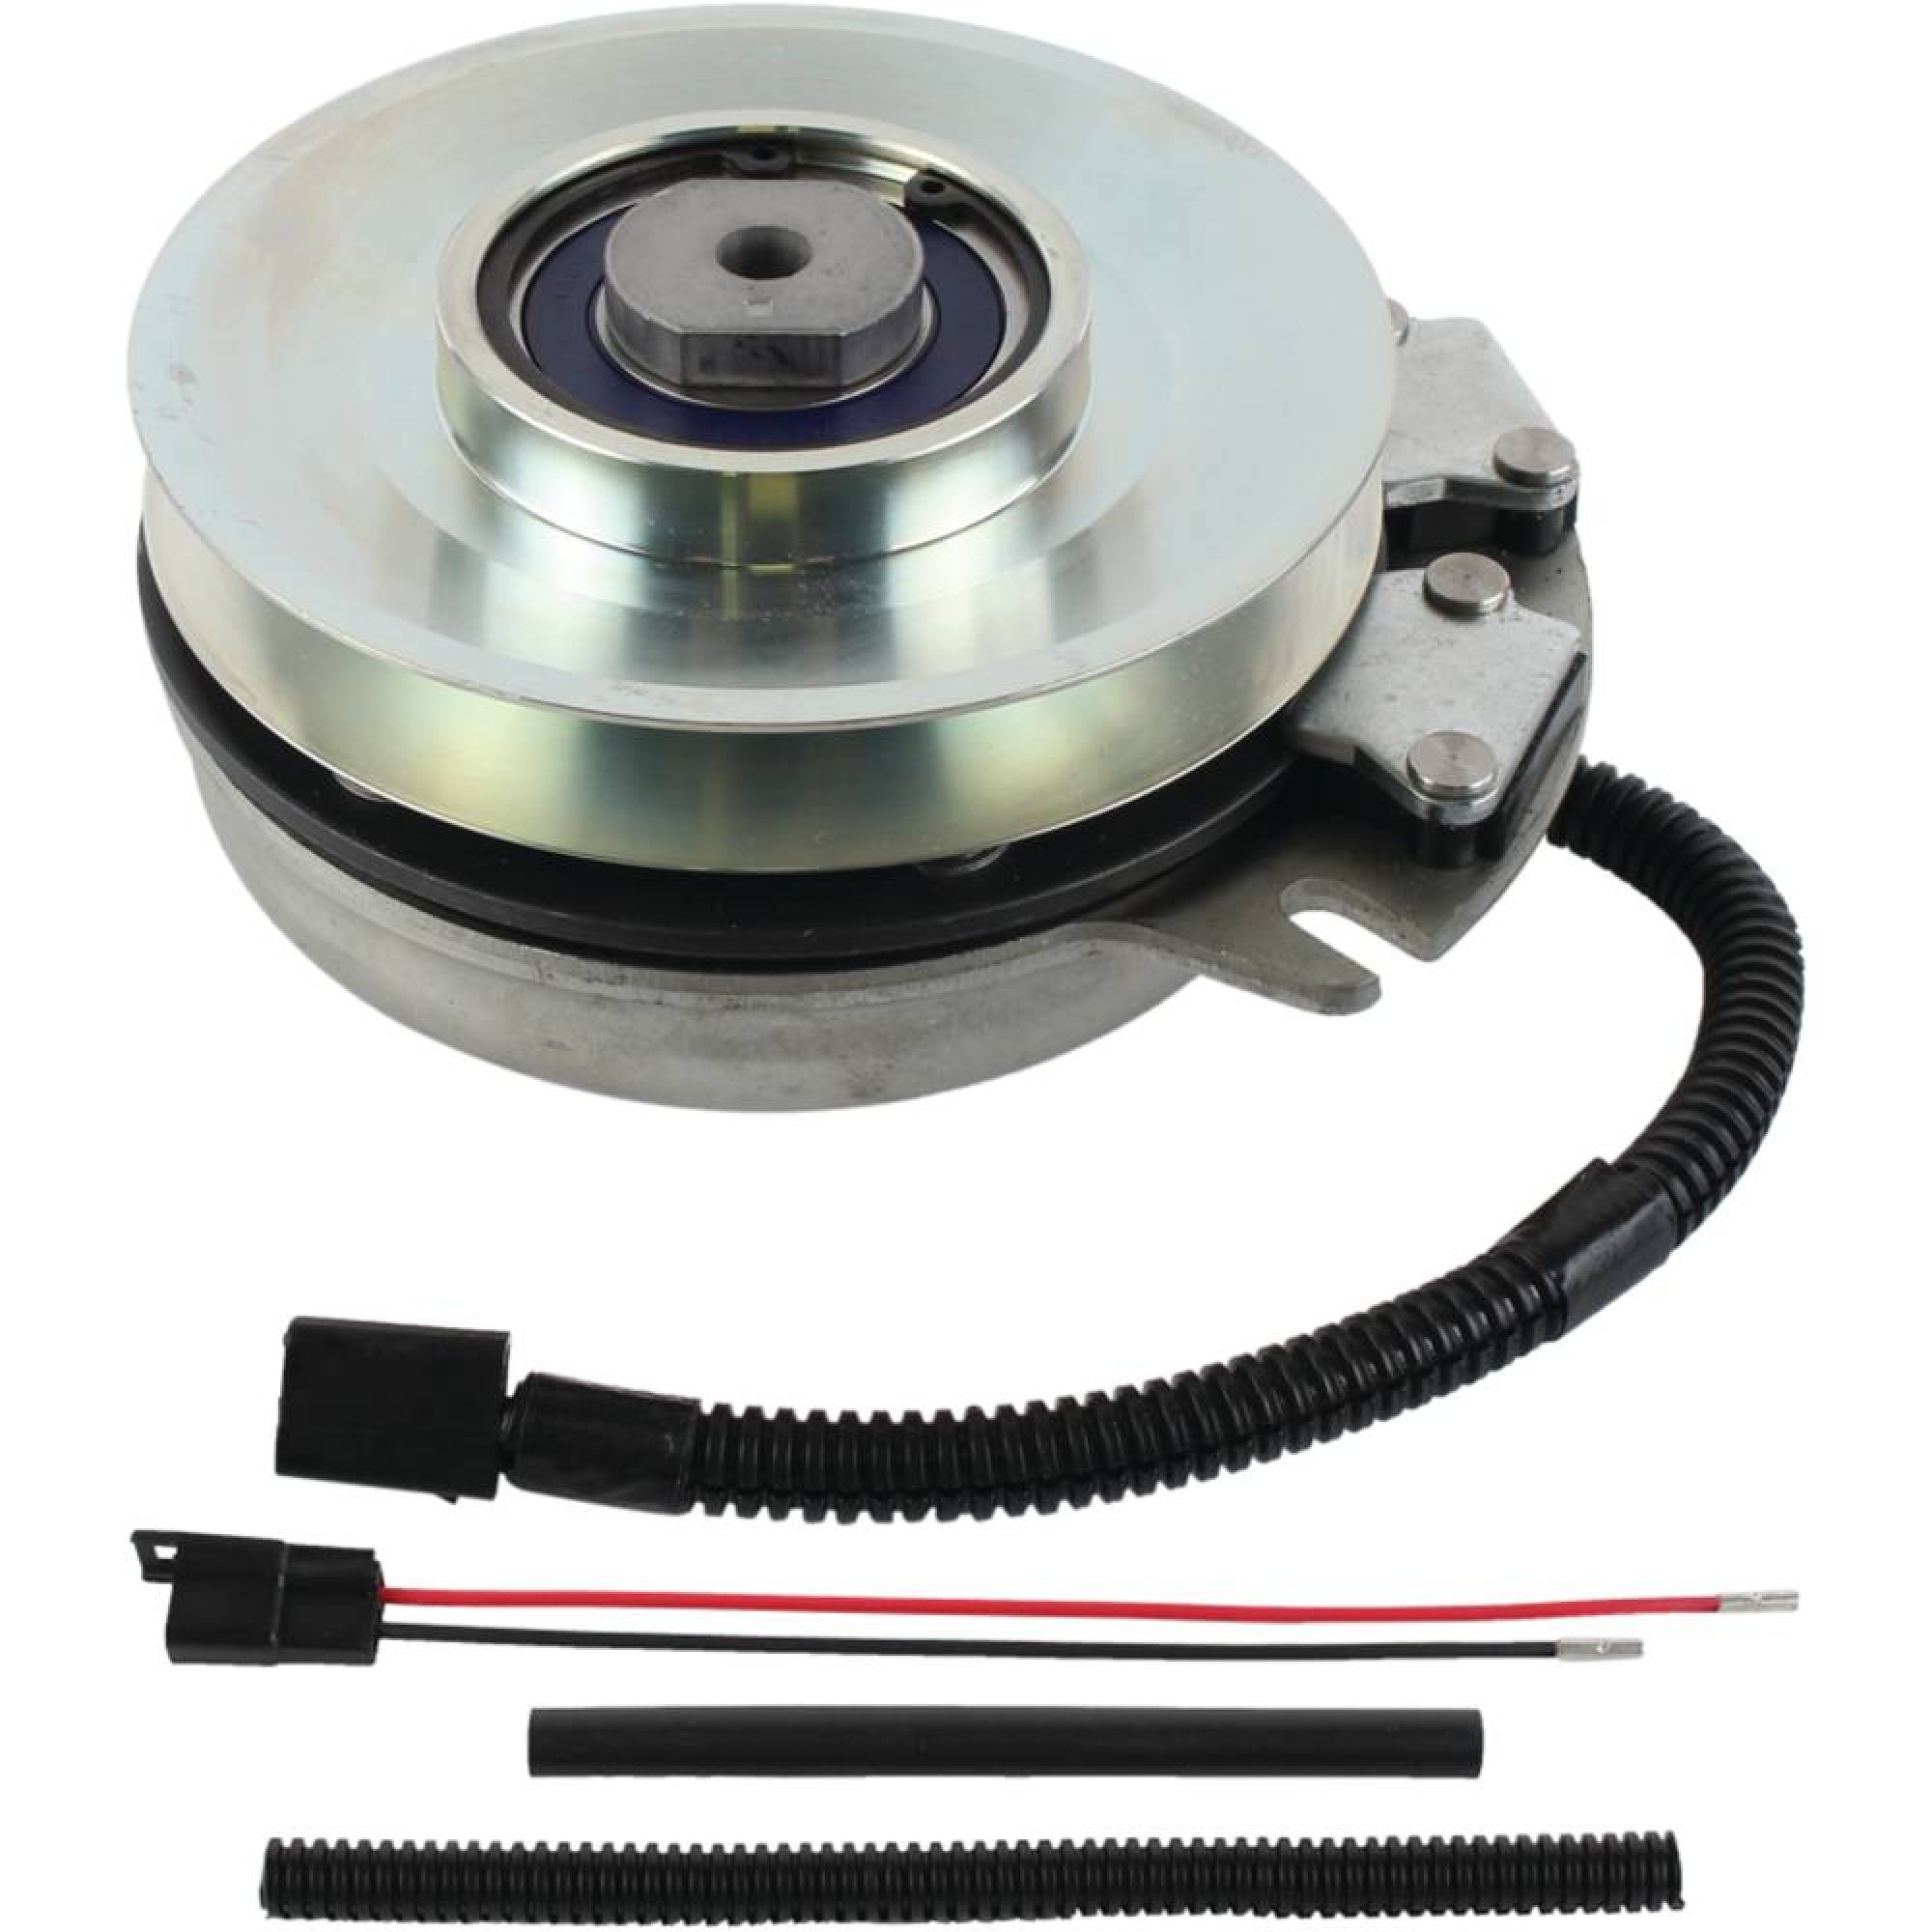 medium resolution of xtreme replacement clutch for wright stander 71410001 with wire harness repair kit xtreme outdoor power equipment